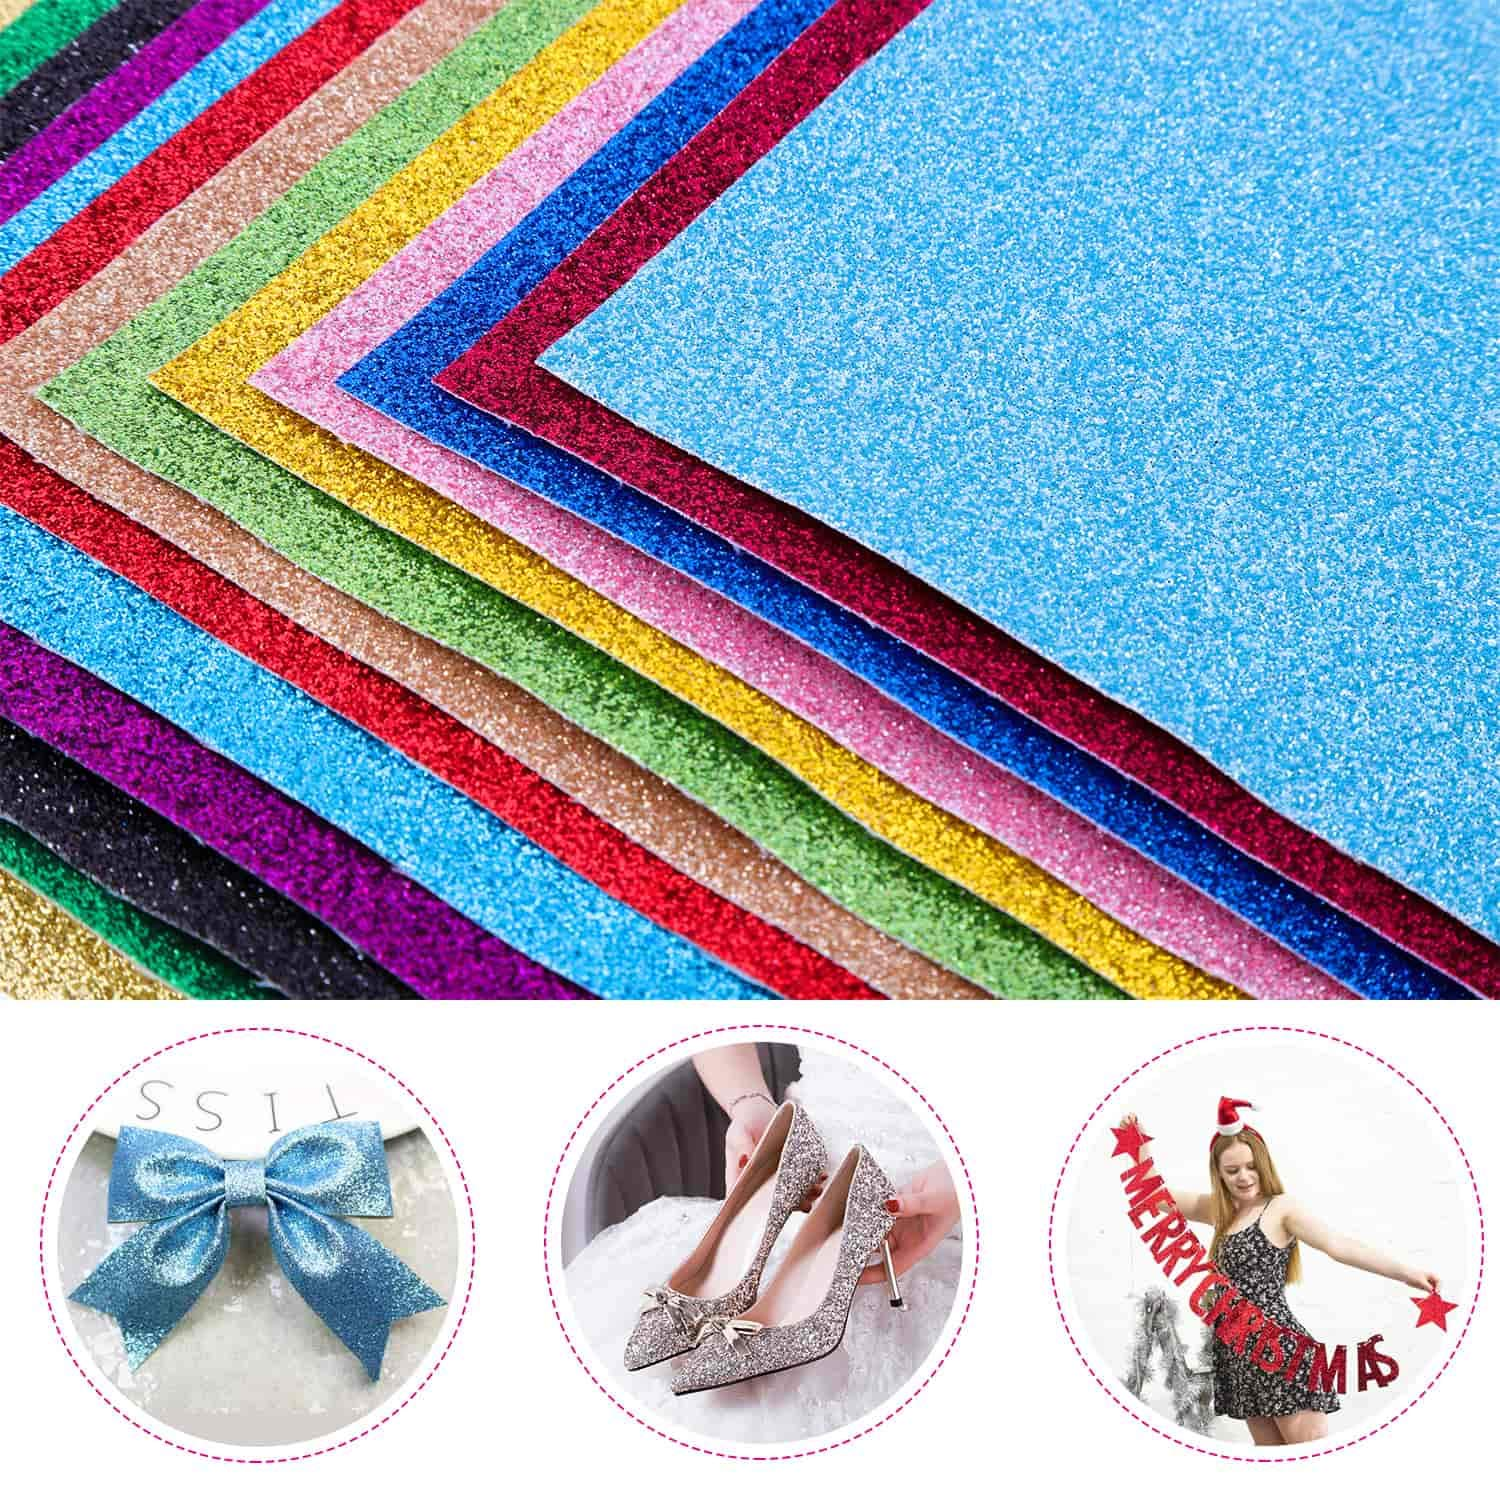 Shynek 20 Pack Faux Leather Sheets Glitter Vinyl Sheets PU Leather Fabric Sheets for Hair Bow Jewelry Making and Hand Crafts 12.6 x 8.6 Inches